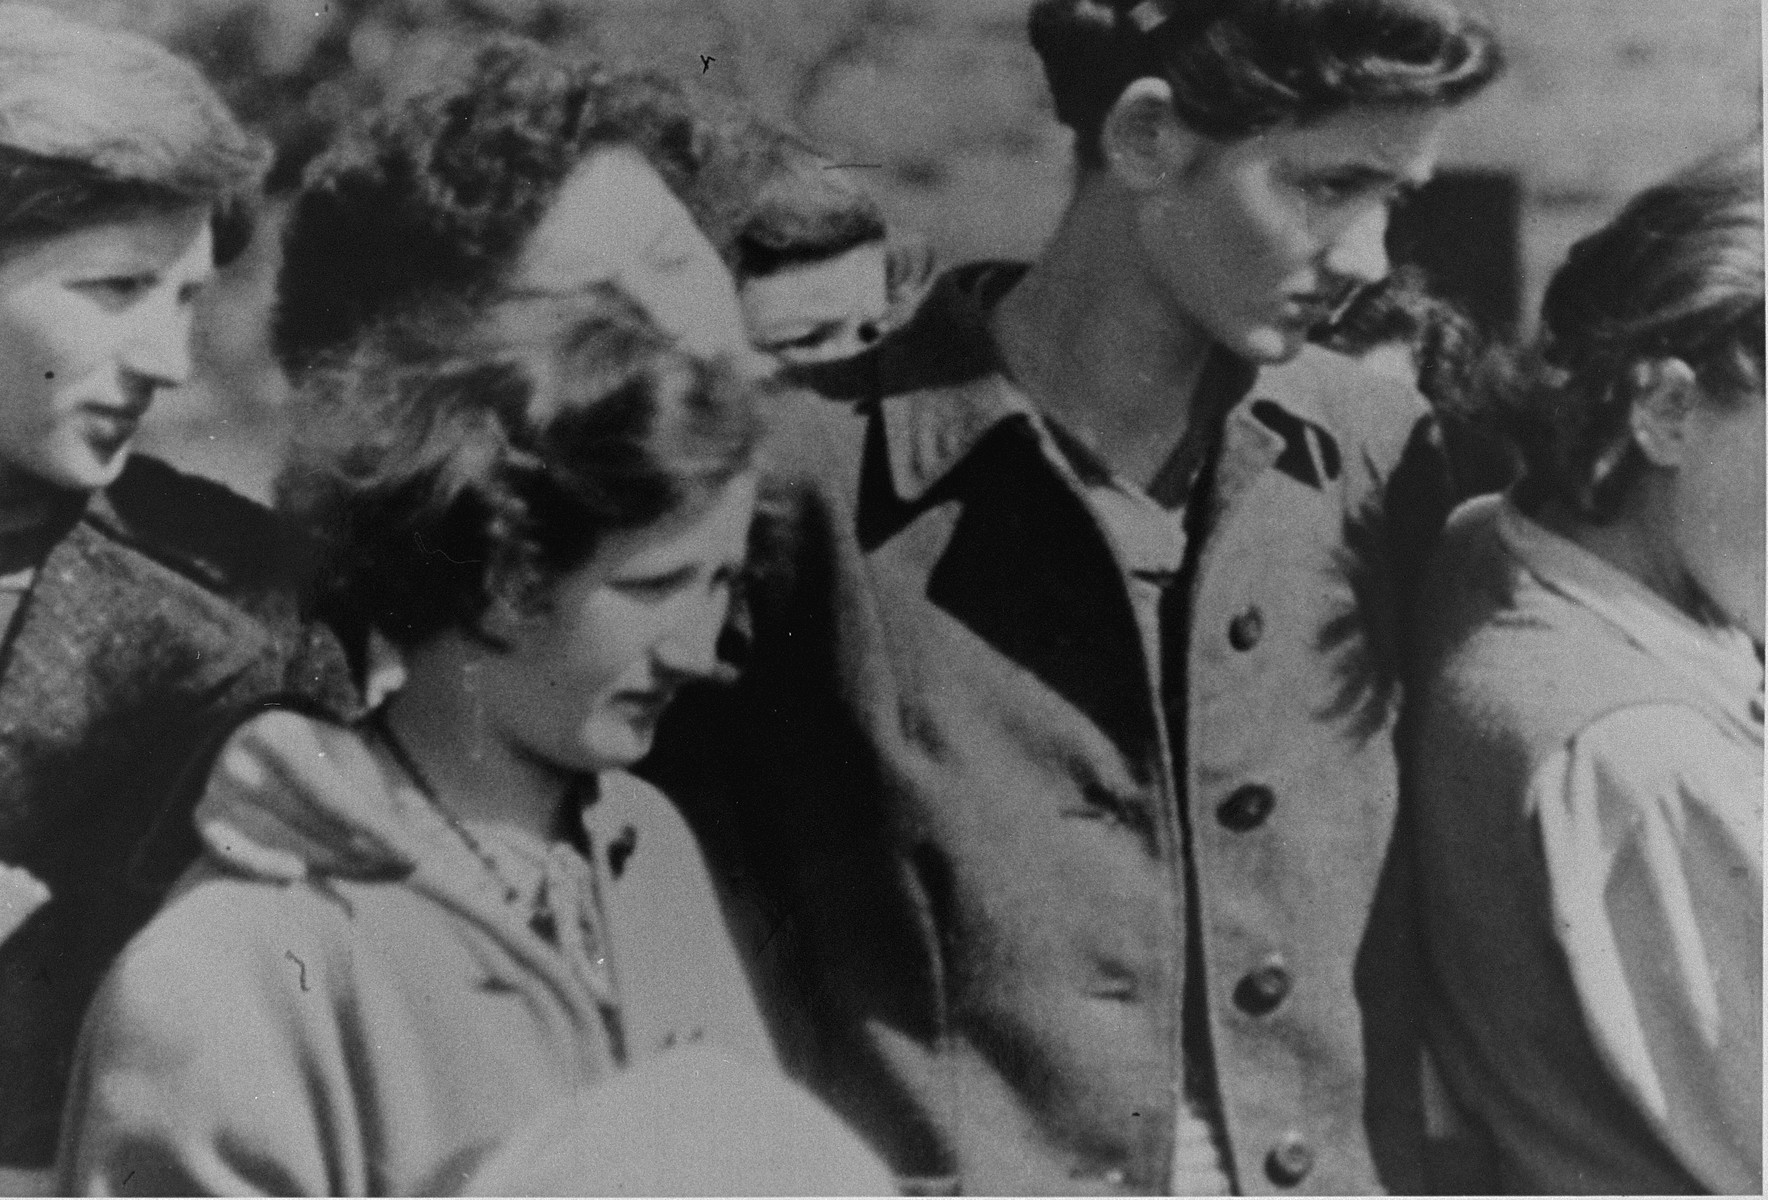 Young men and women from the surrounding villages are confronted with the atrocities committed by Germans in Bergen-Belsen concentration camp.